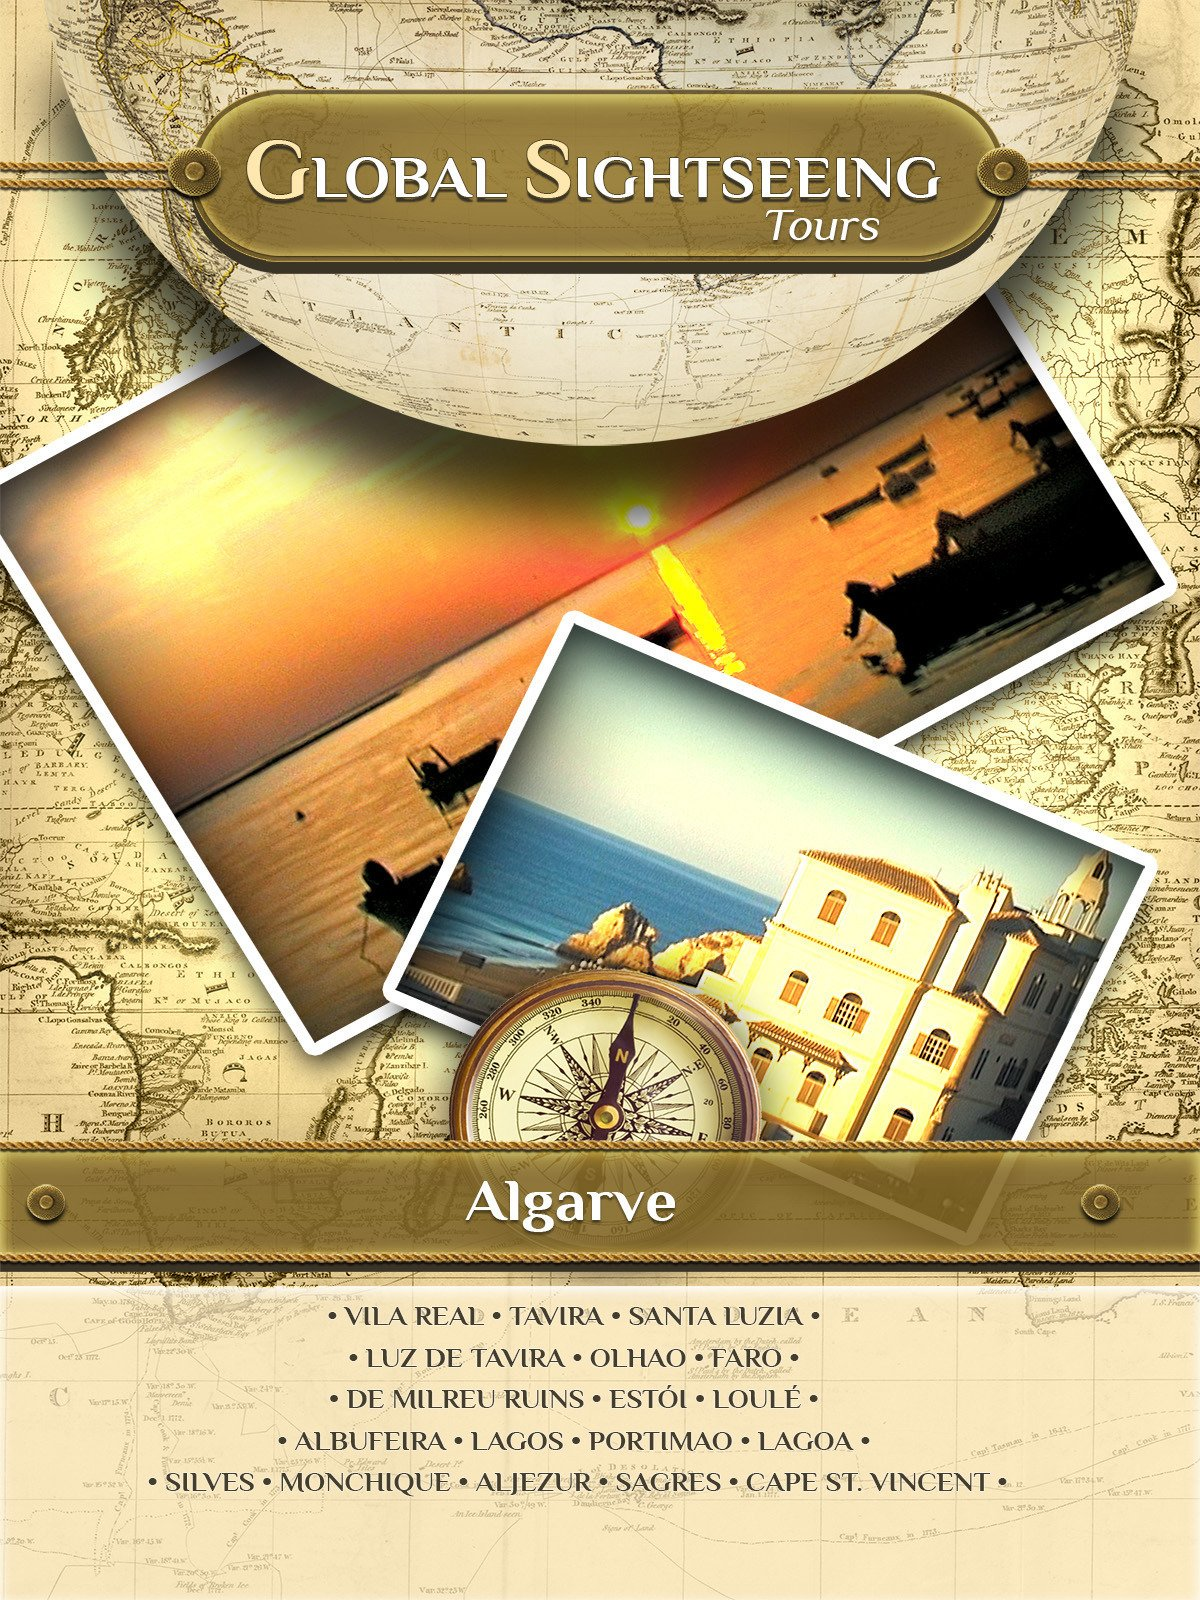 Algarve, Portugal - Global Sightseeing Tours